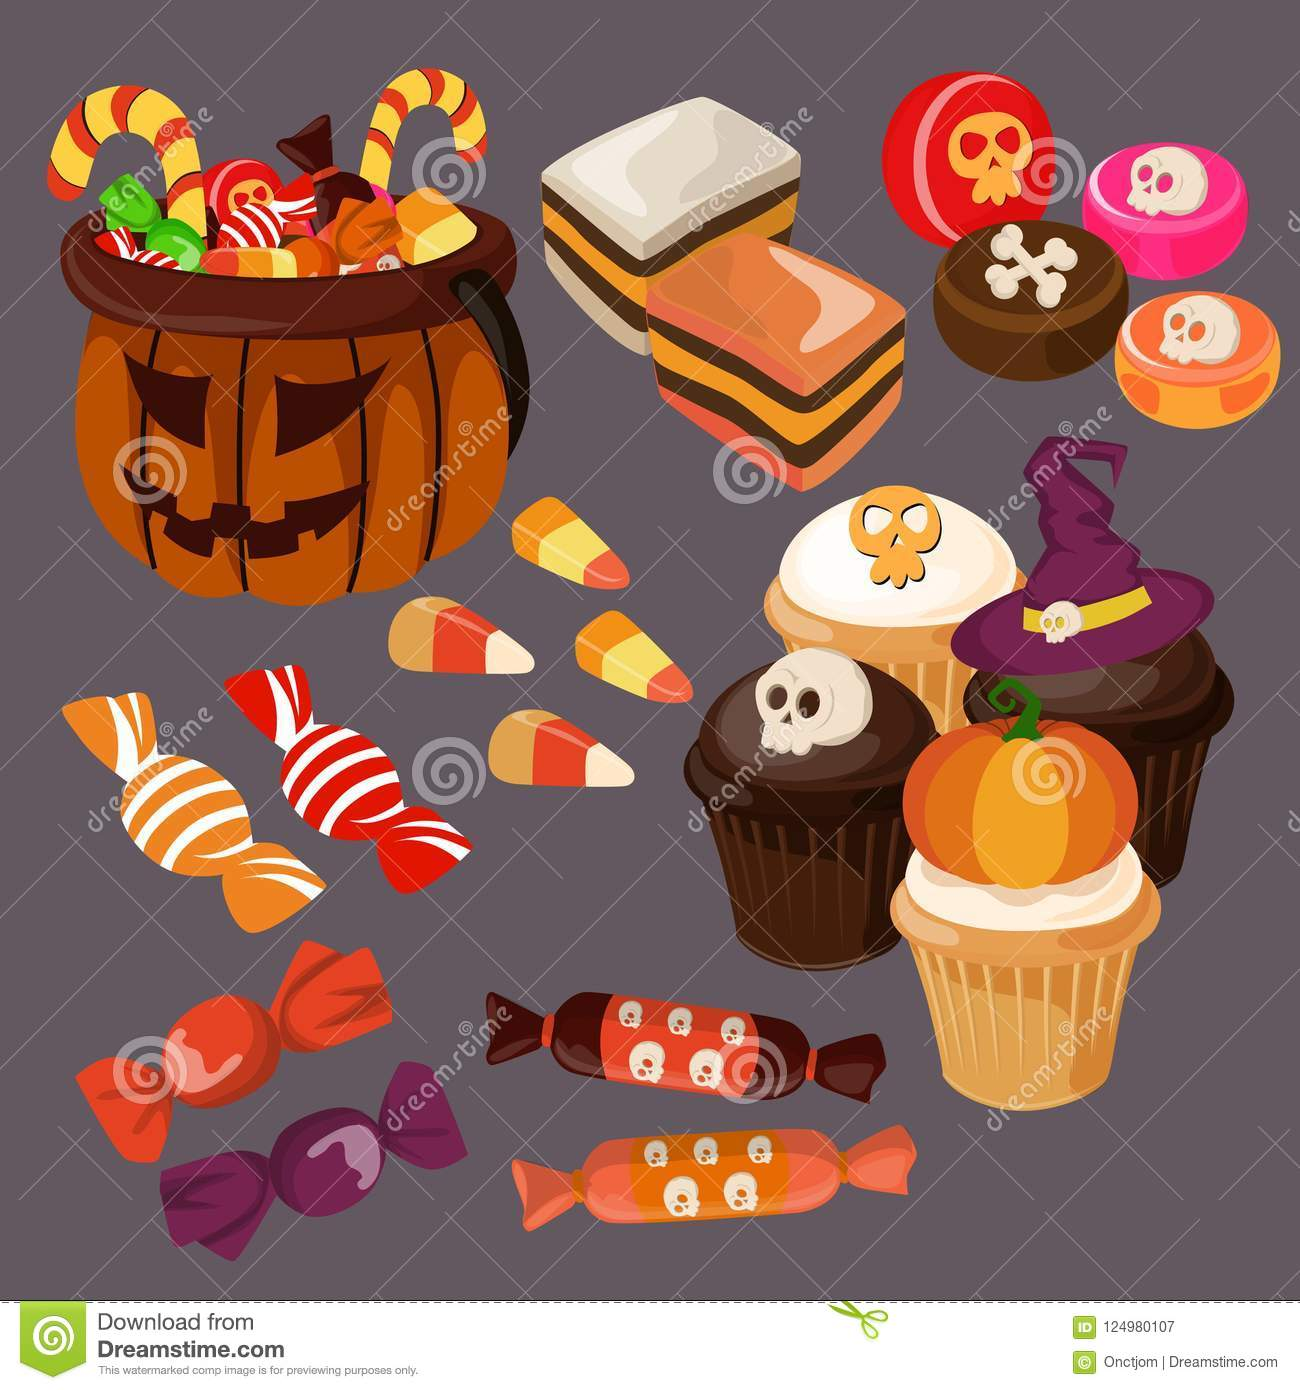 download cute halloween candy and treats stock vector illustration of cupcake celebration 124980107